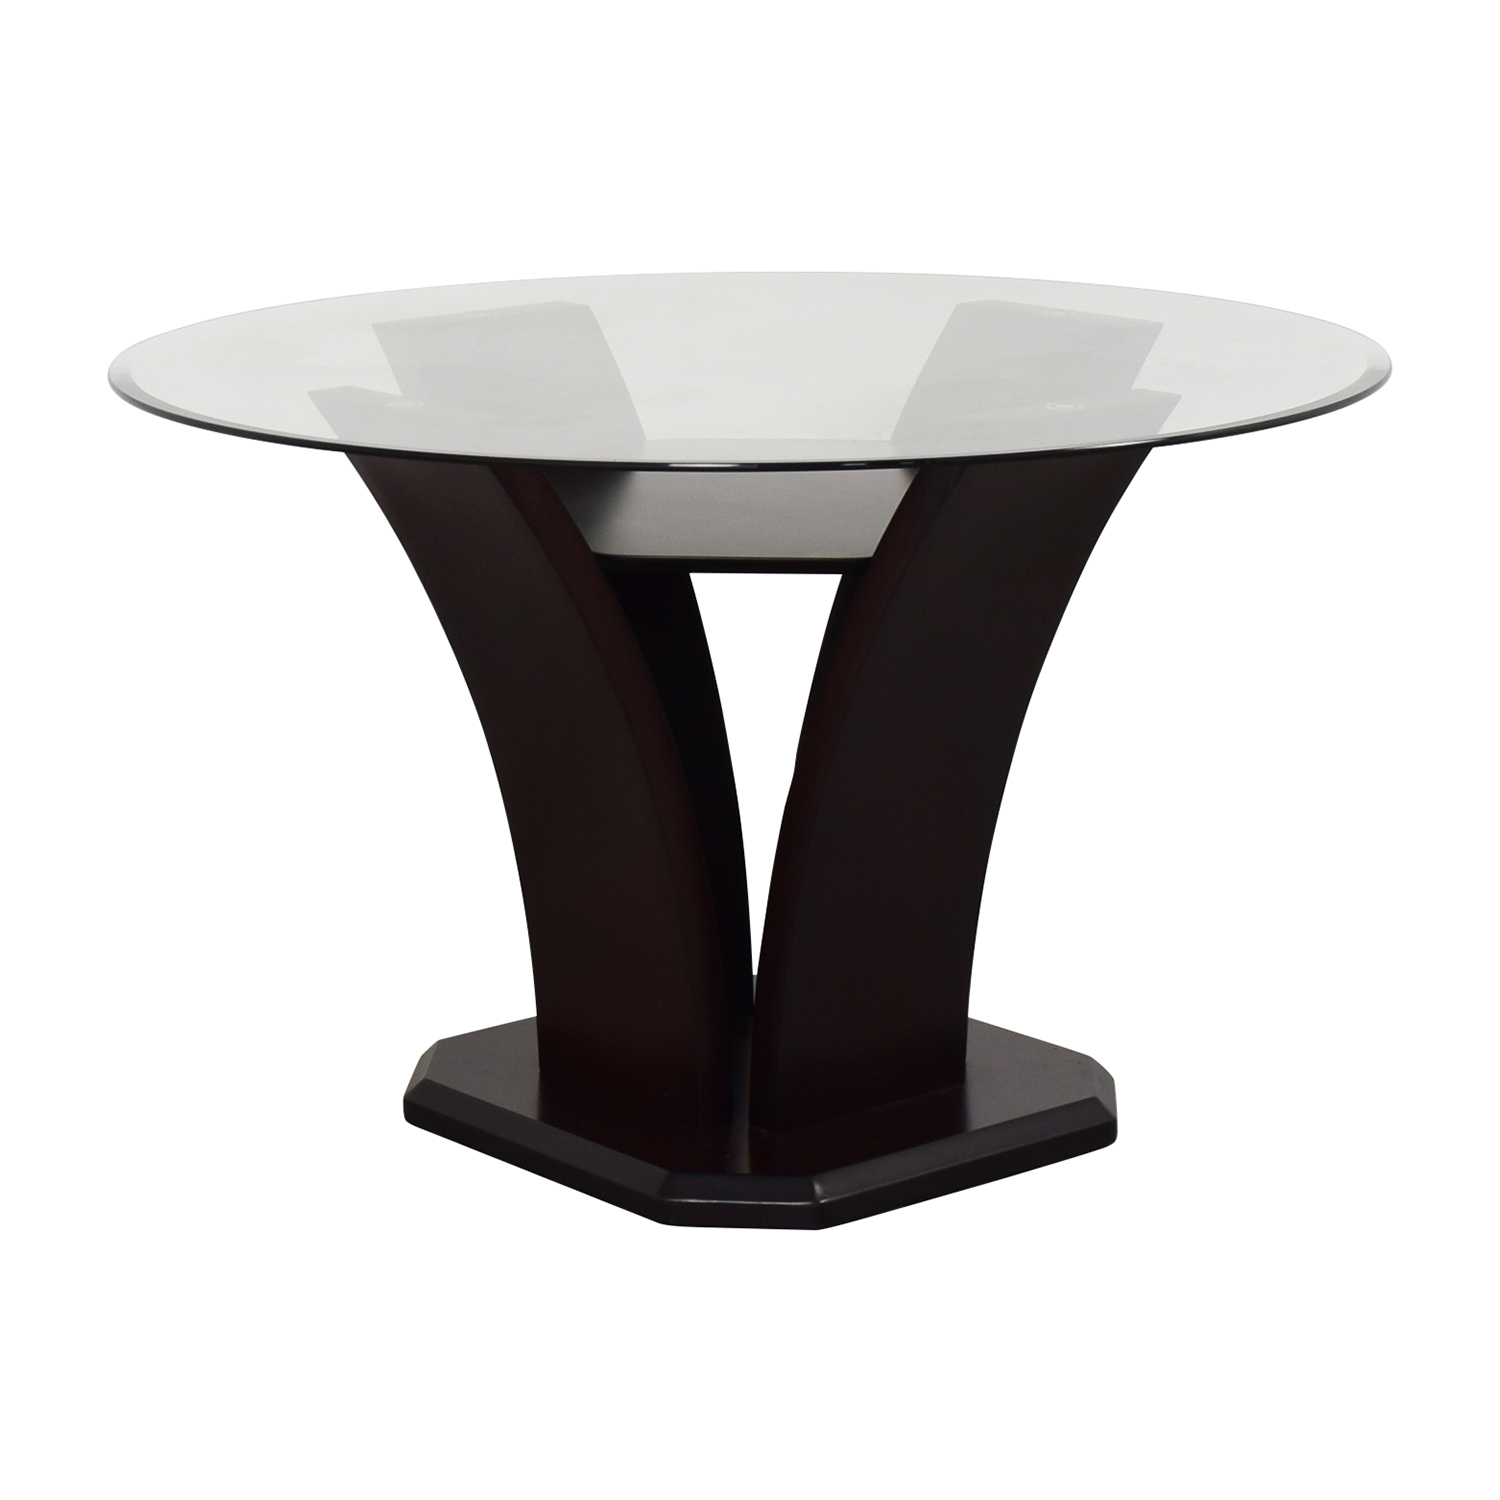 shop Raymour & Flanigan Venice Dining Table Raymour & Flanigan Tables